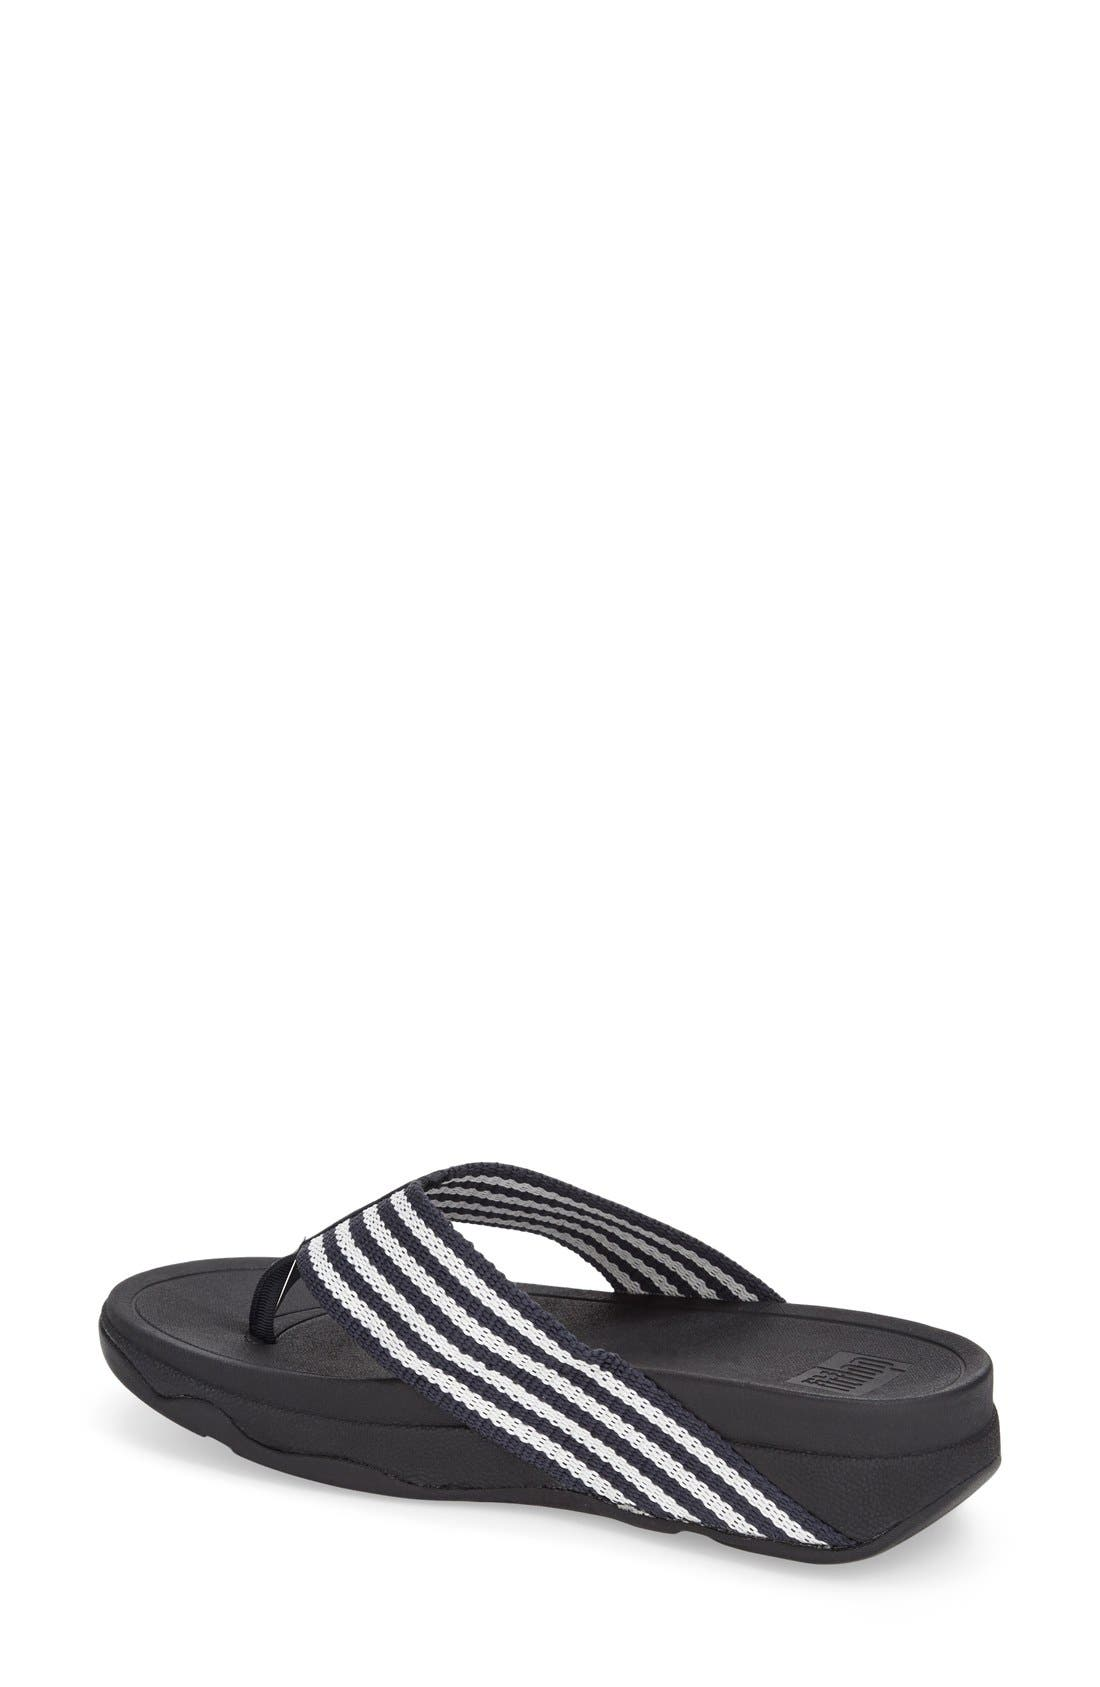 'Surfa' Thong Sandal,                             Alternate thumbnail 14, color,